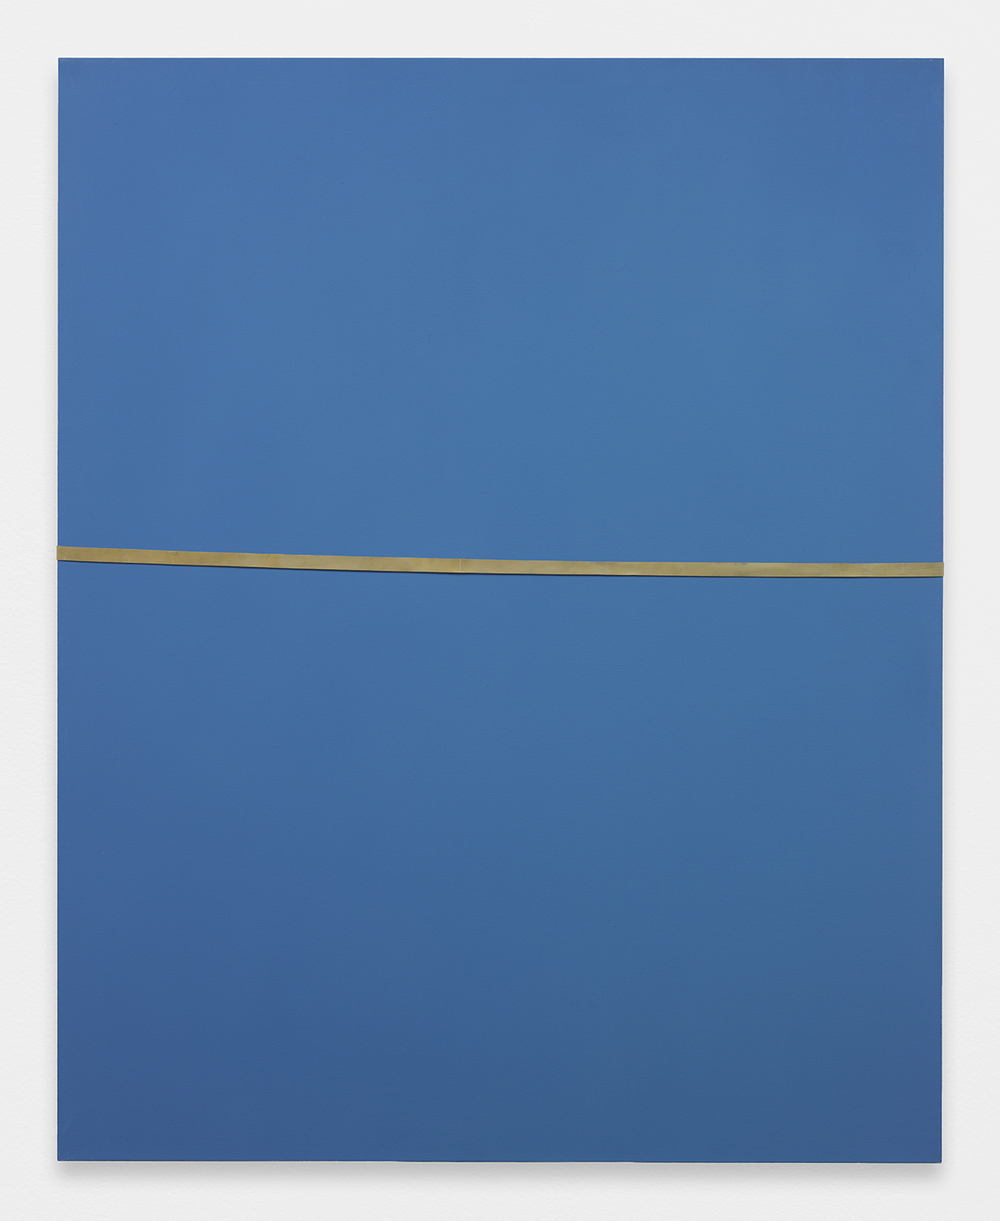 ALEX PERWEILER / ZACHARY SUSSKIND Wet Tan Line, 2013 Oil and industrial rubber band on canvas 60 x 48 inches